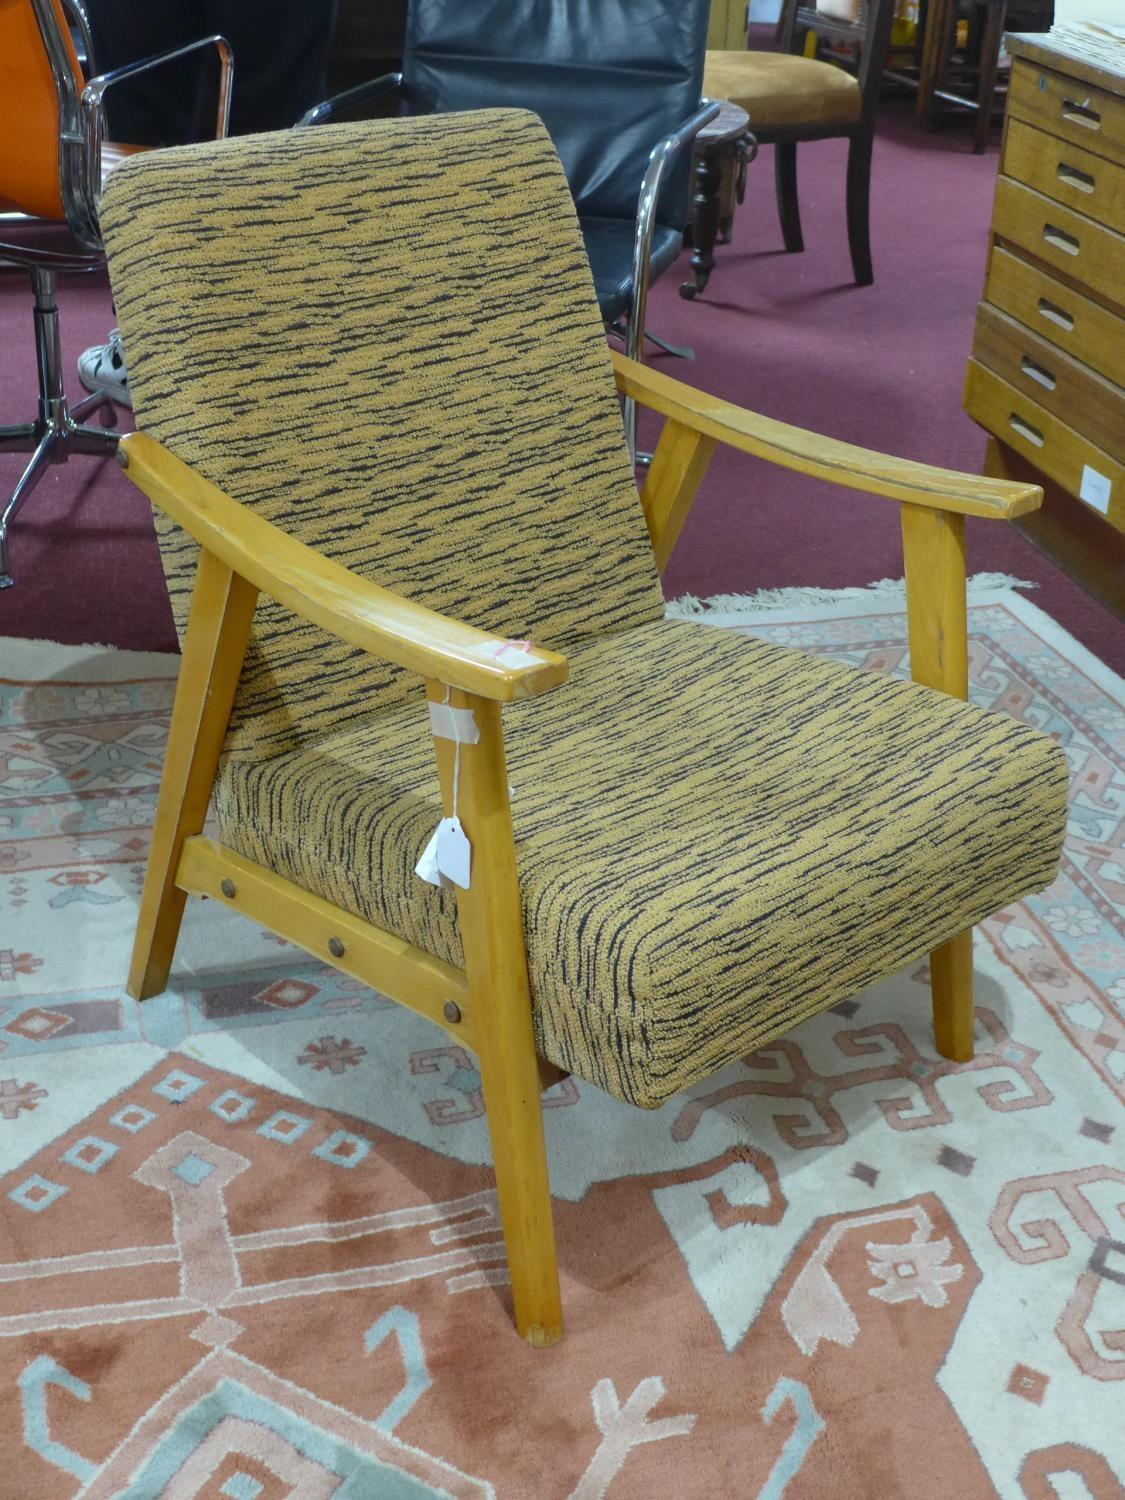 Lot 275 - A retro armchair with striped orange upholstery, H. 80 x W. 60 x D. 65 cm